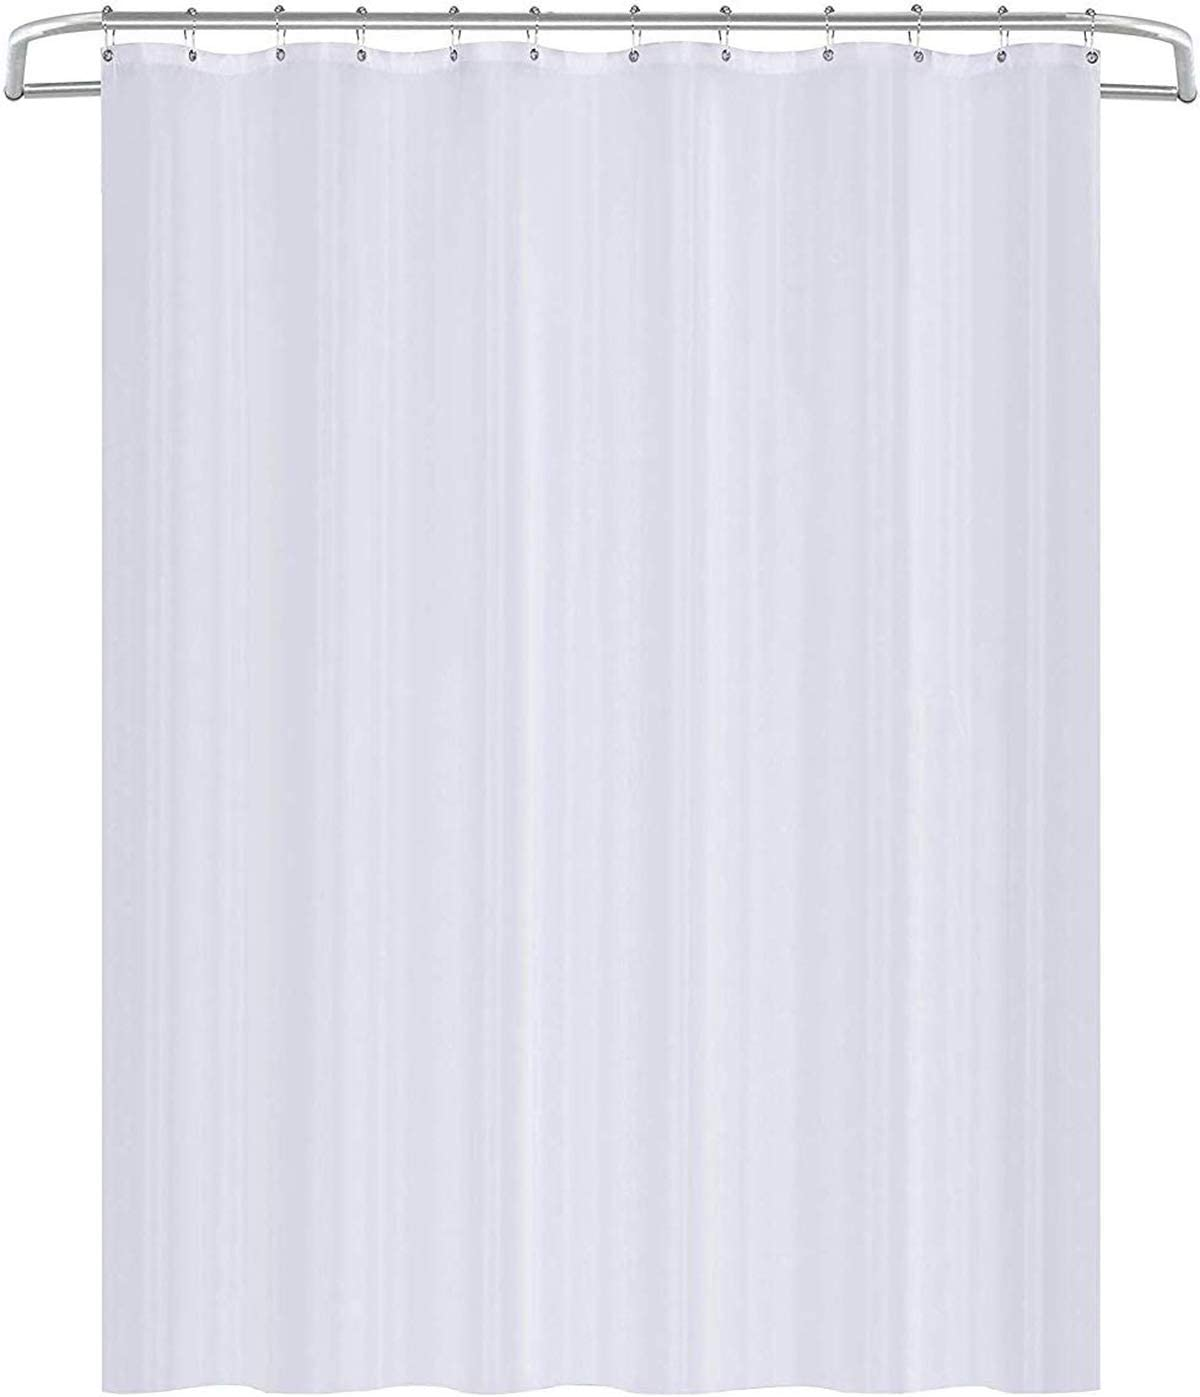 Utopia Home - Fabric Shower Curtain - Waterproof Bathroom Polyester Shower Stall and Bath Tub Curtain, Solid White 183 x 183 cm 183 cm x 183 cm (72 x 72 Inch)